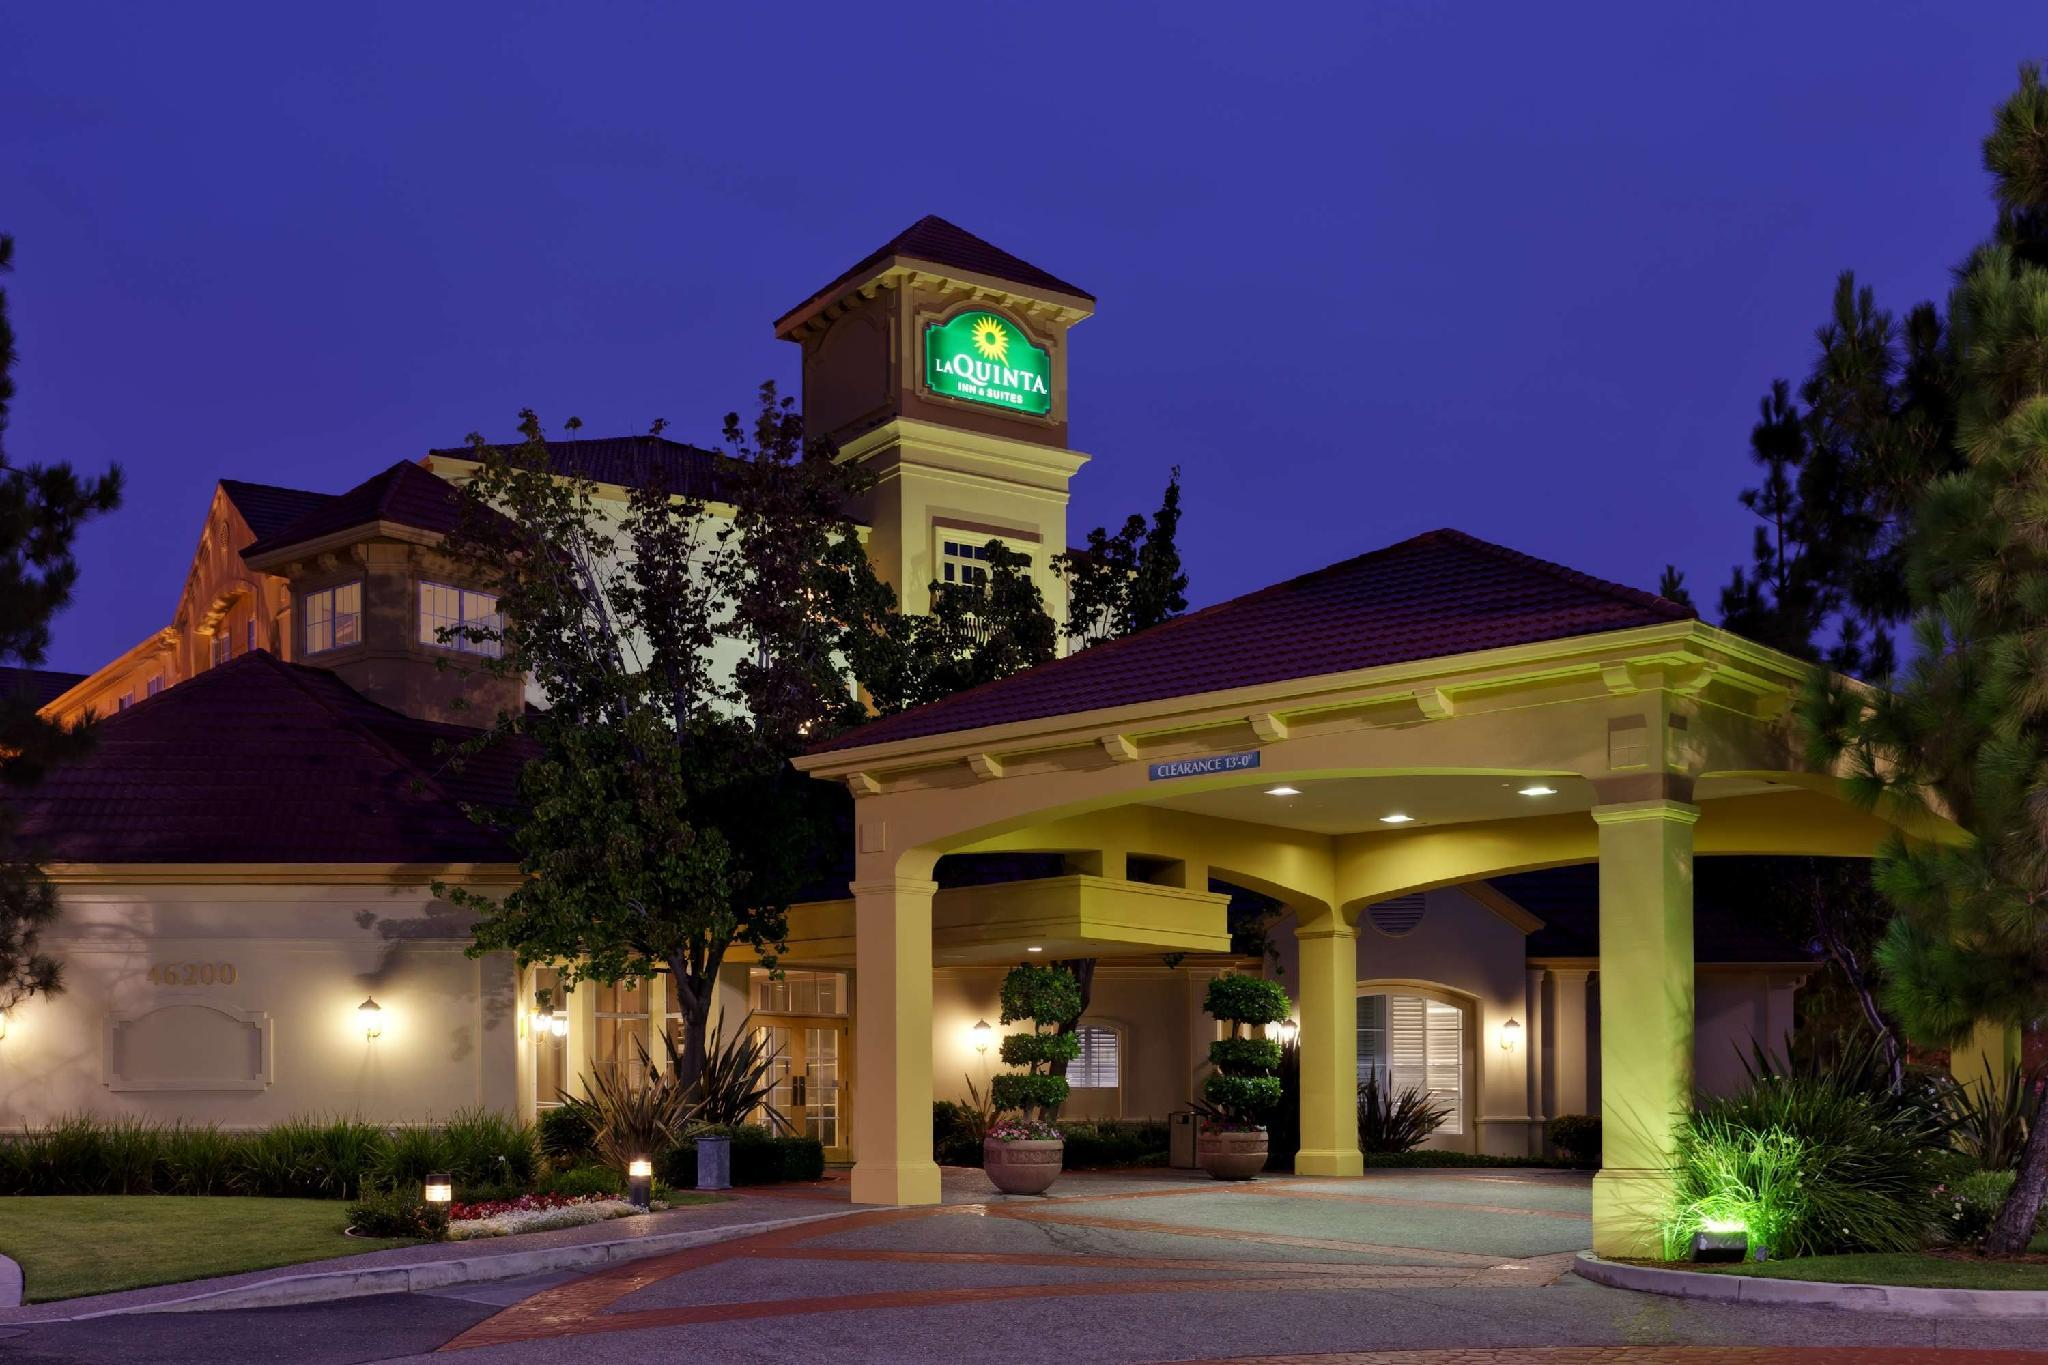 La Quinta Inn & Suites By Wyndham Fremont   Silicon Valley